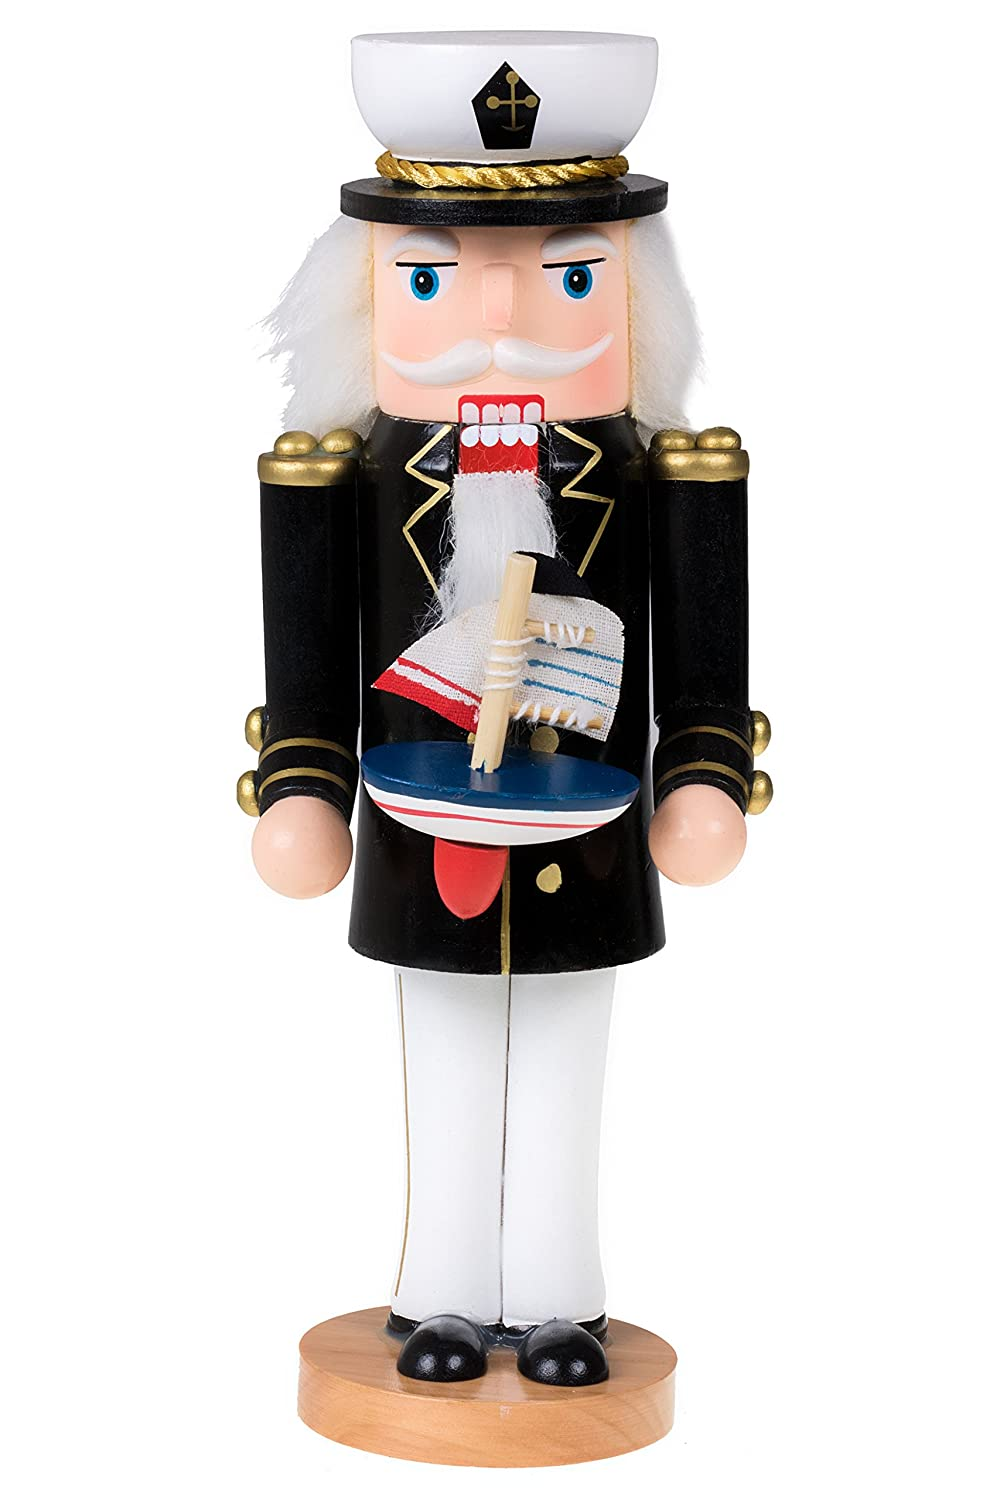 Clever Creations Traditional Wooden Pirate Nutcracker with Peg Leg Festive Holiday Décor | 10